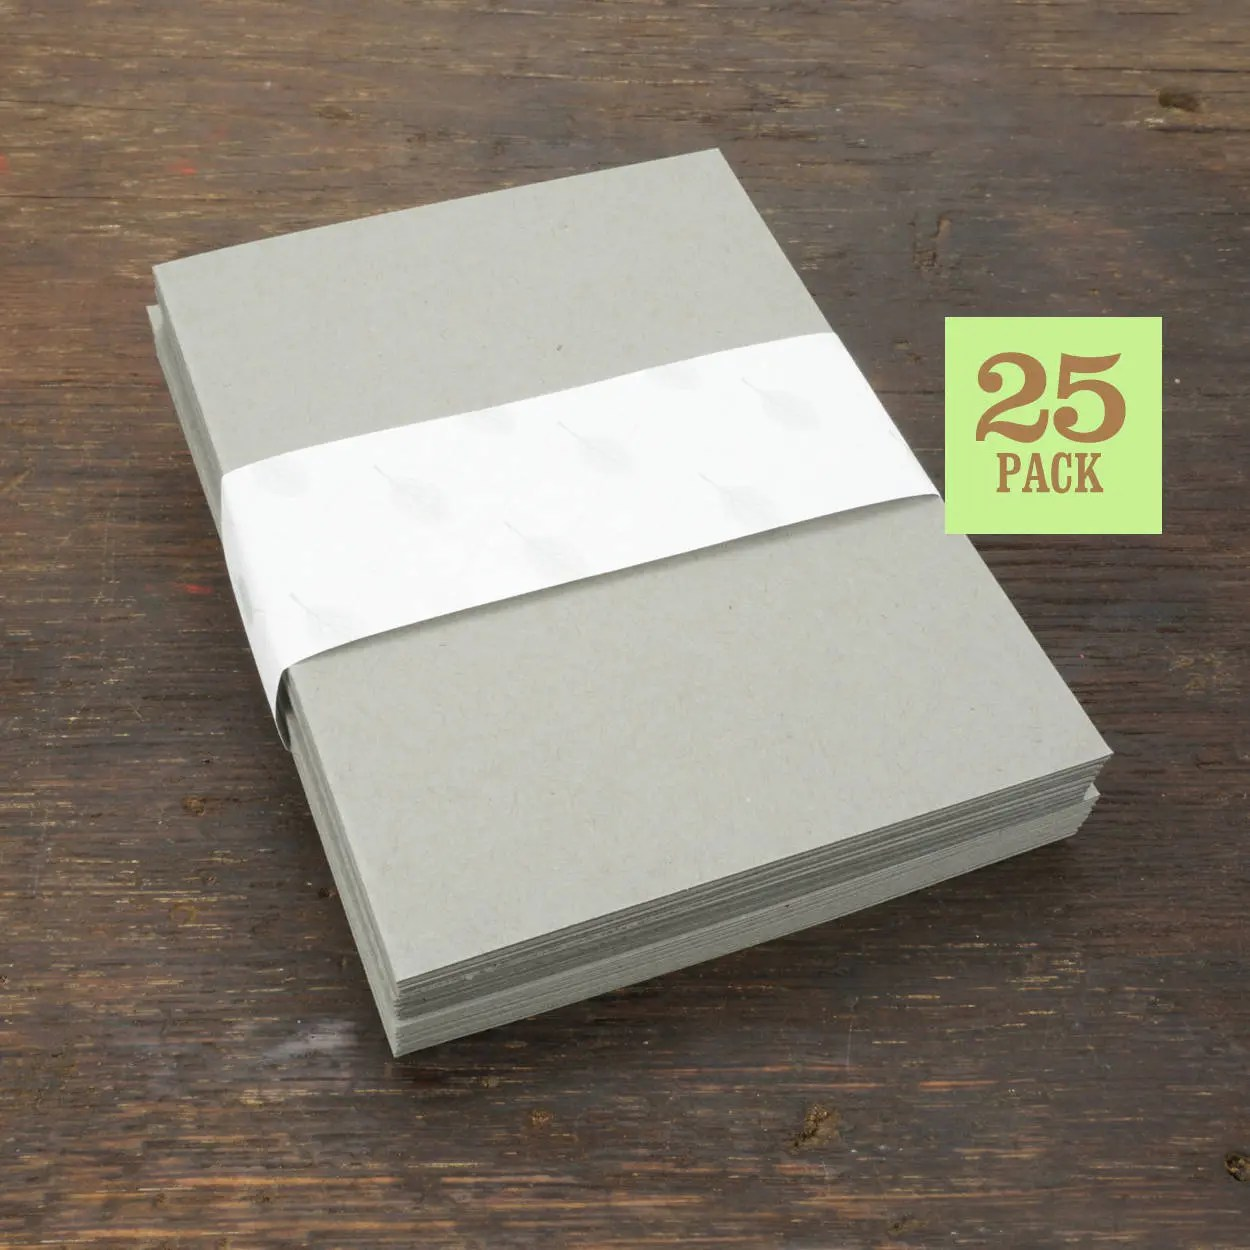 Blank Notecards with Envelope Size A2 Gray Cards and - what size are notecards